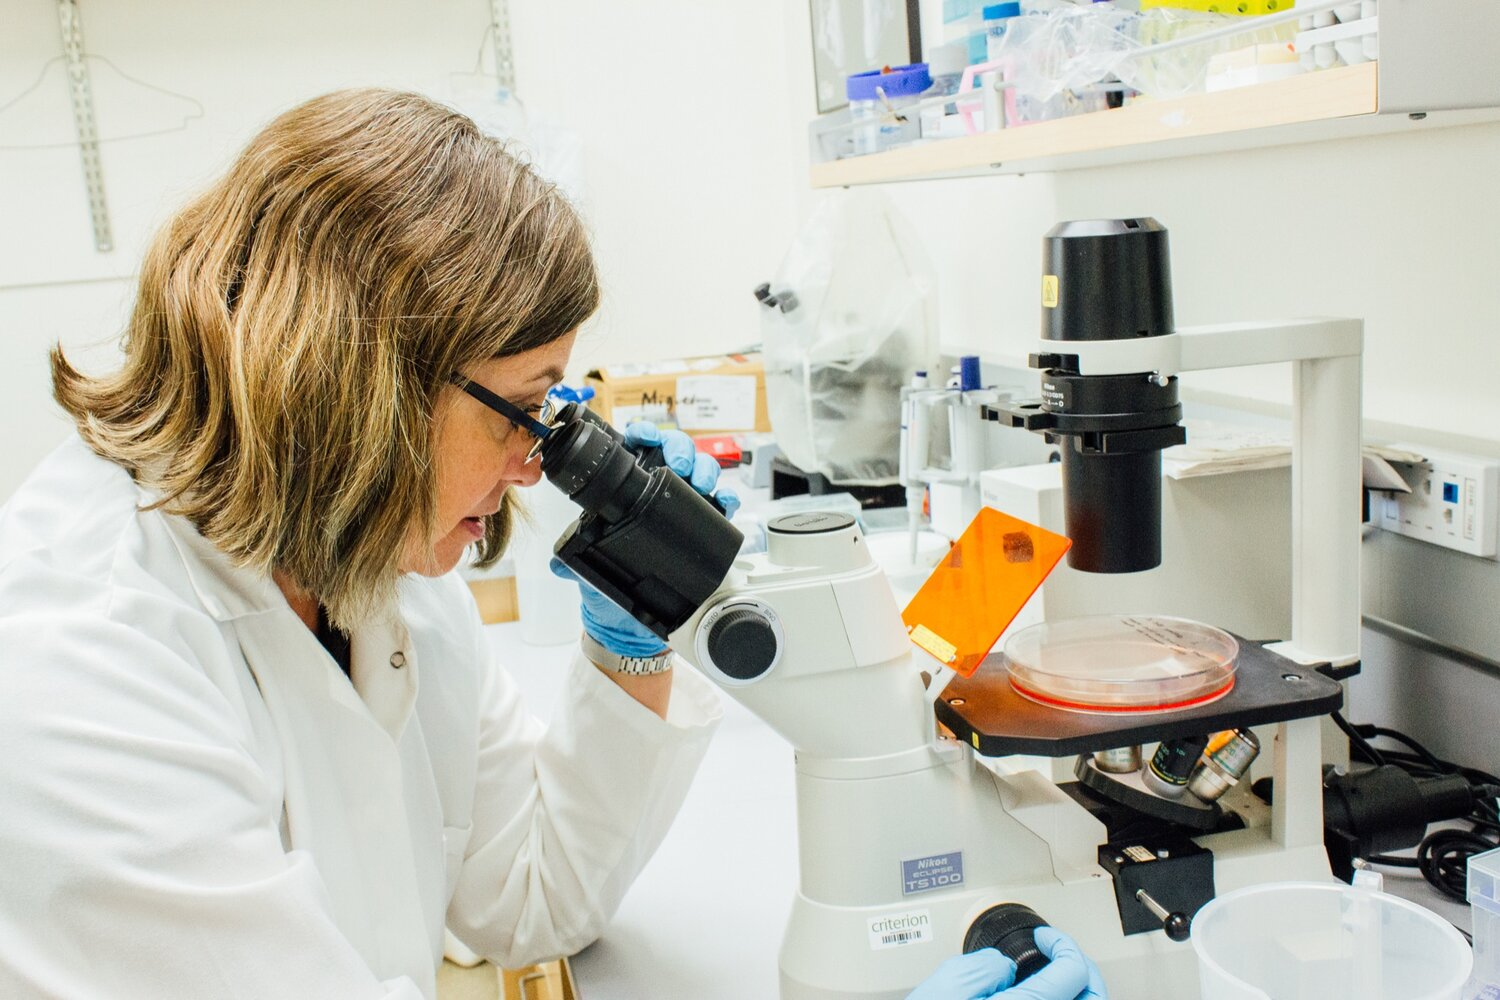 a woman in a lab coat and gloves looks through a microscope in a lab